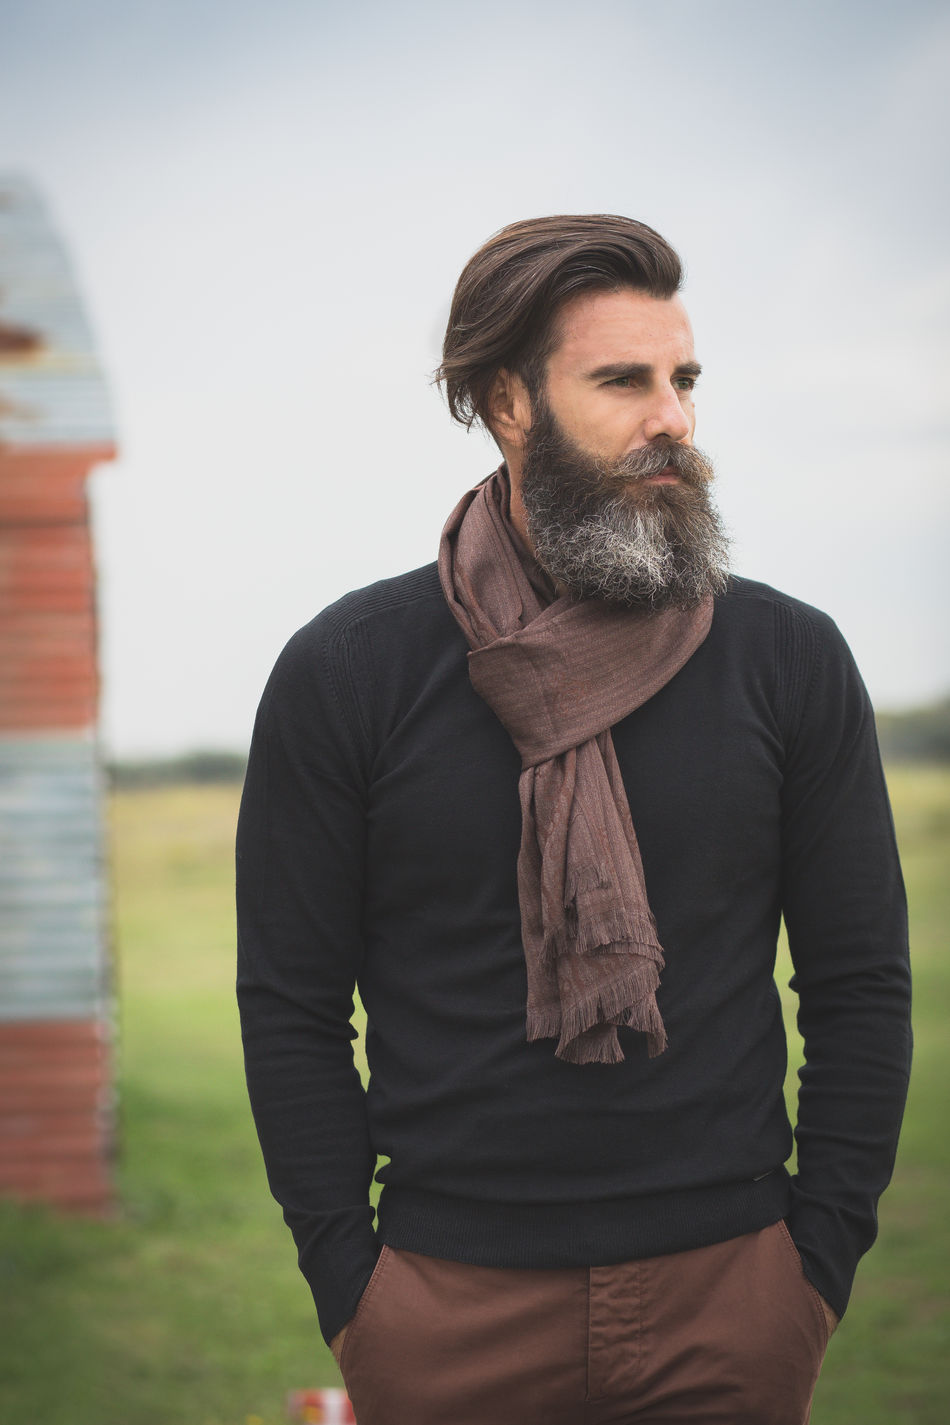 Beautiful stock photos of italien, 45-49 Years, Beard, Casual Clothing, Caucasian Ethnicity